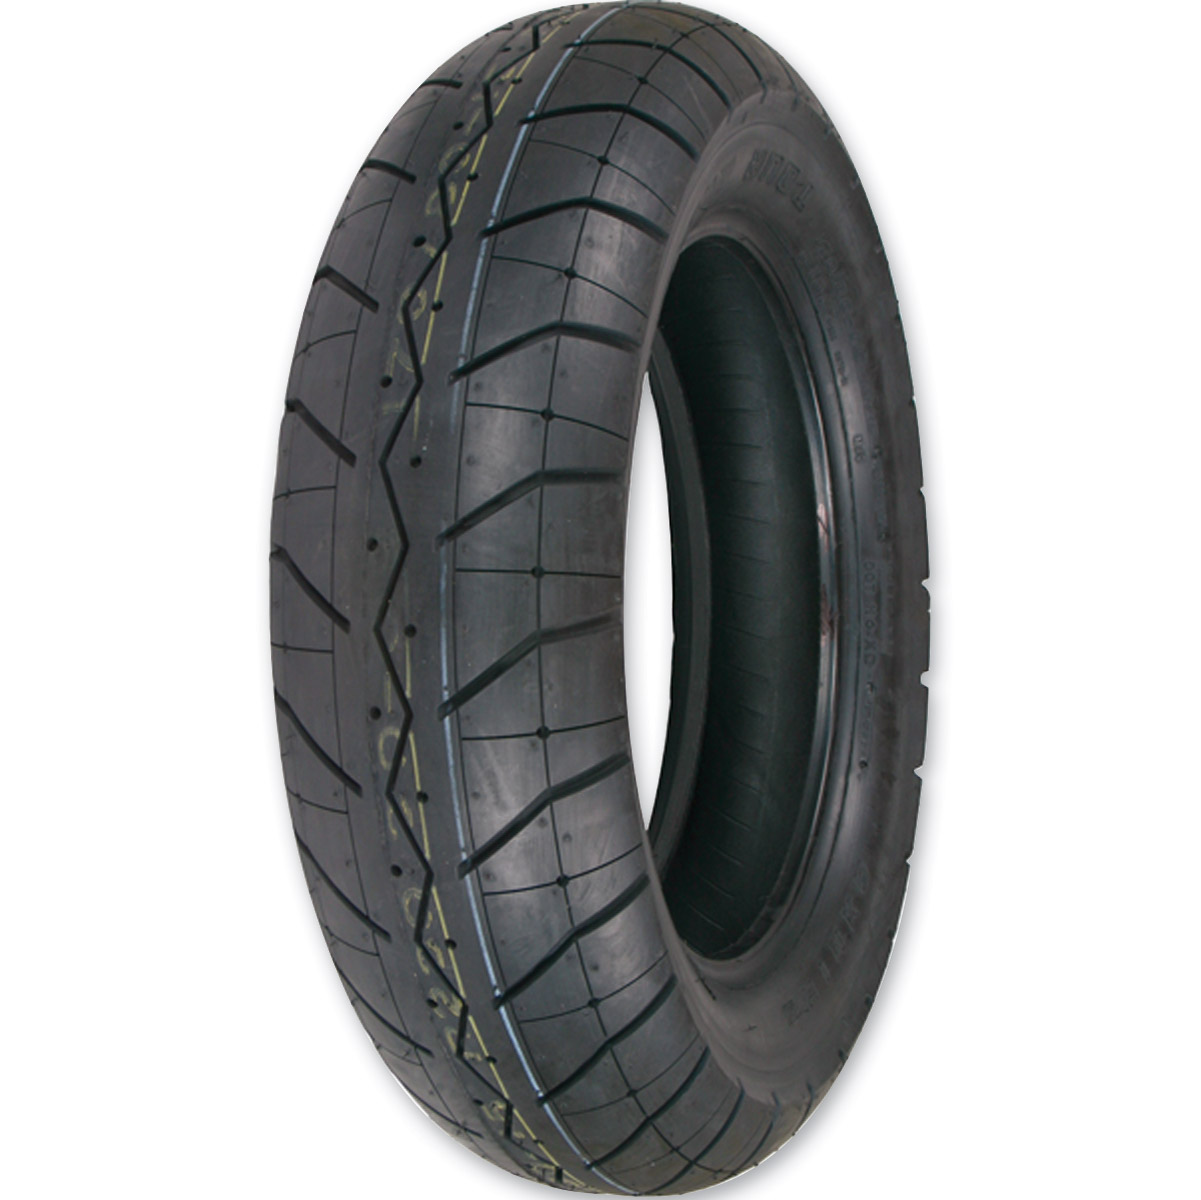 Shinko 230 Tour Master 180/70-15 Rear Tire